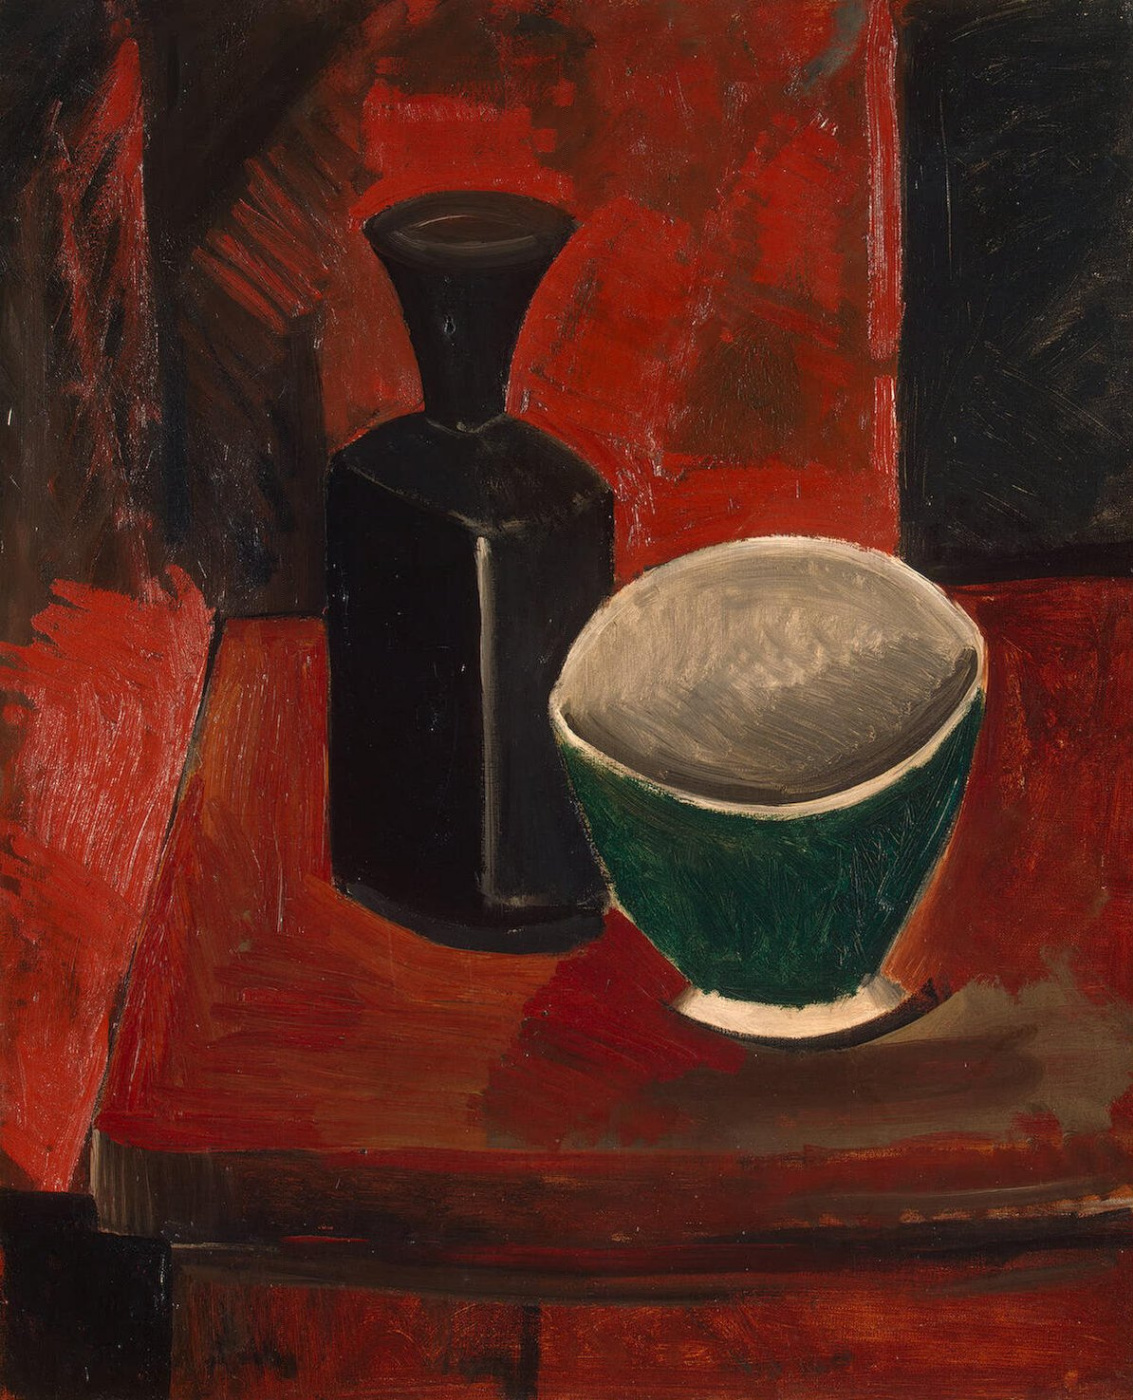 Pablo Picasso. Green bowl and black bottle